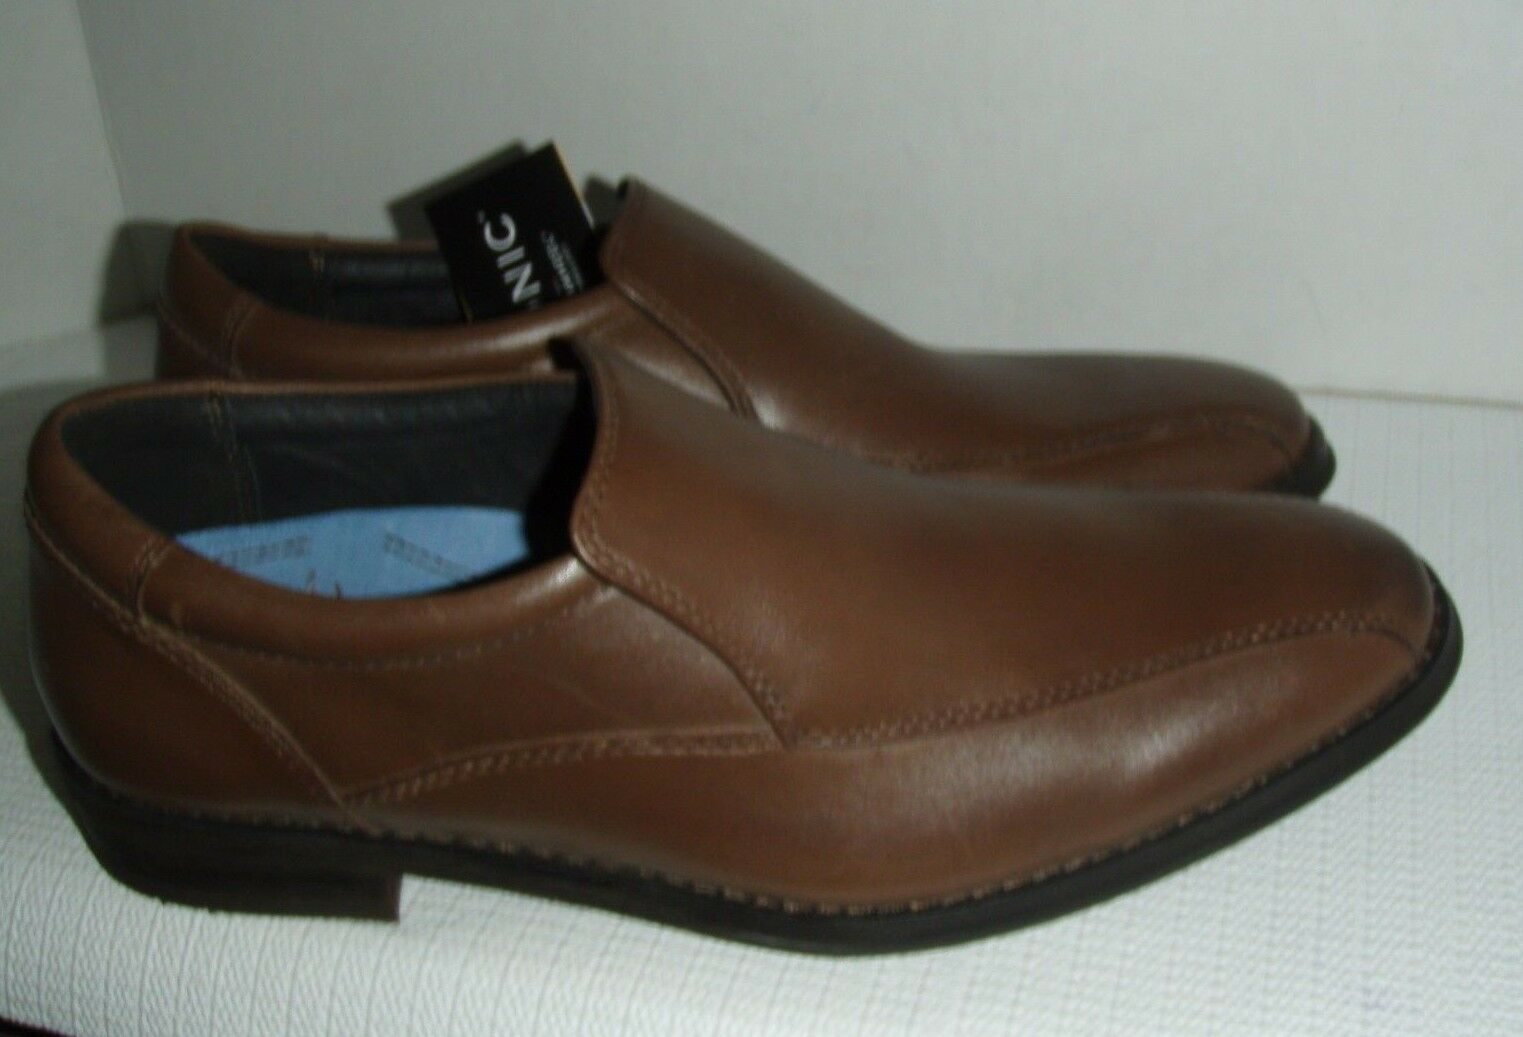 Vionic with Orthaheel Technology Men's Eric Loafer  color Coffee sz 8, 9, 10